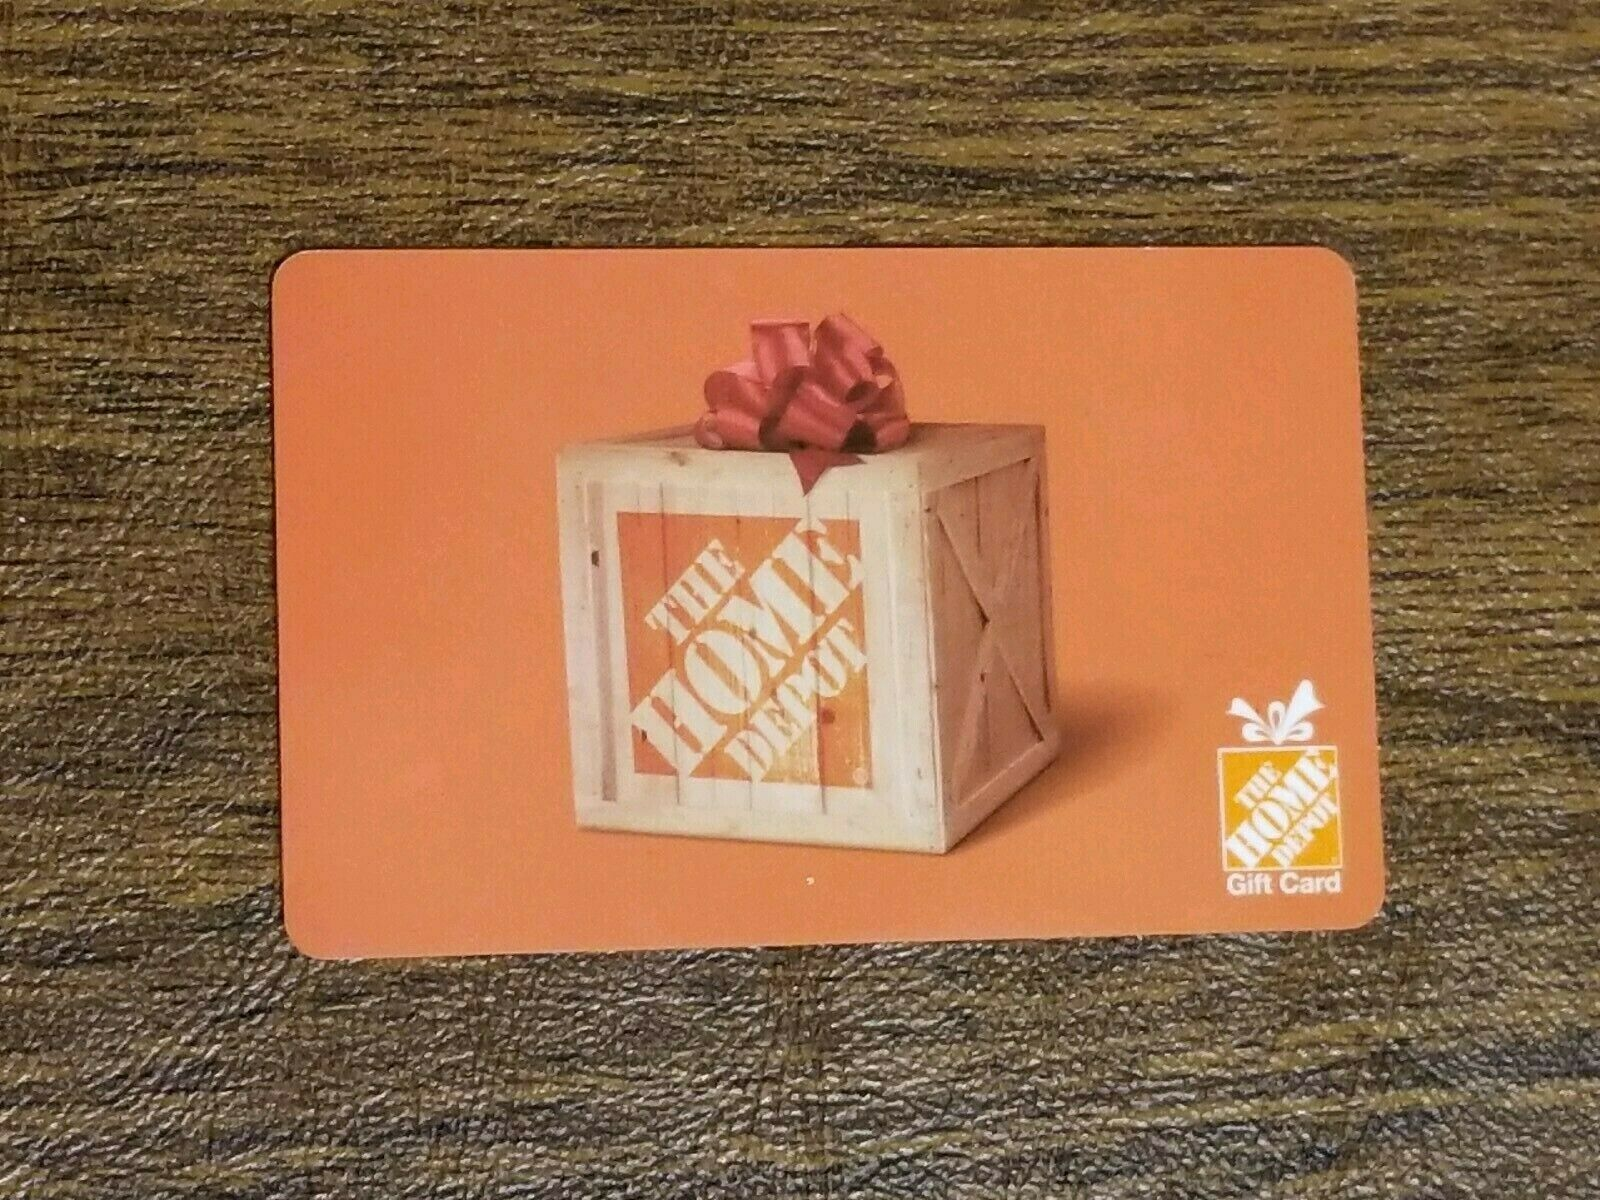 Home Depot Gift Card 500, Physical Card, USA Only Customer 237465 - $475.00